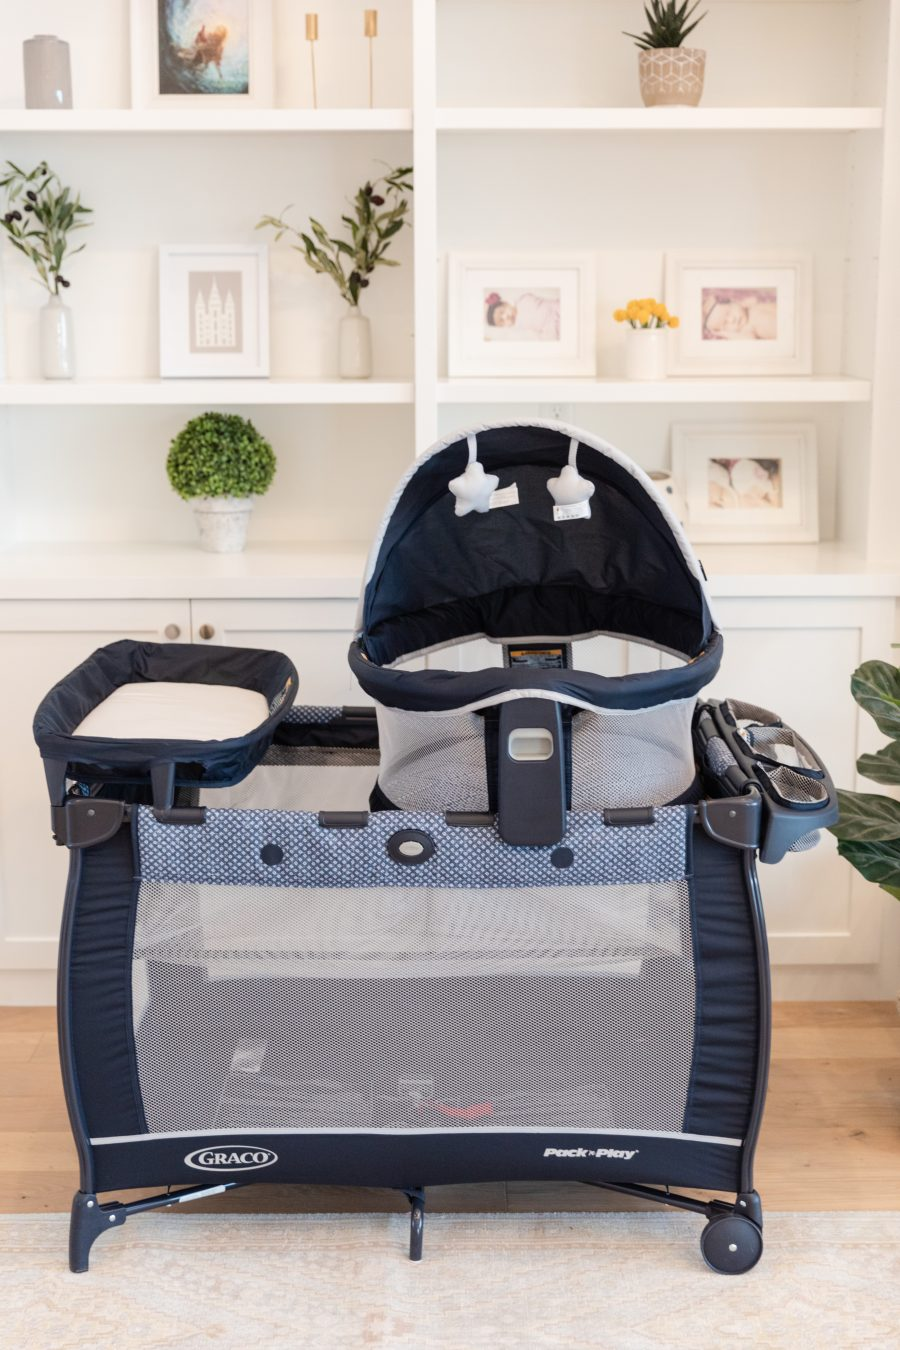 The 5-in-1 Baby Essential That Will Change Your Life